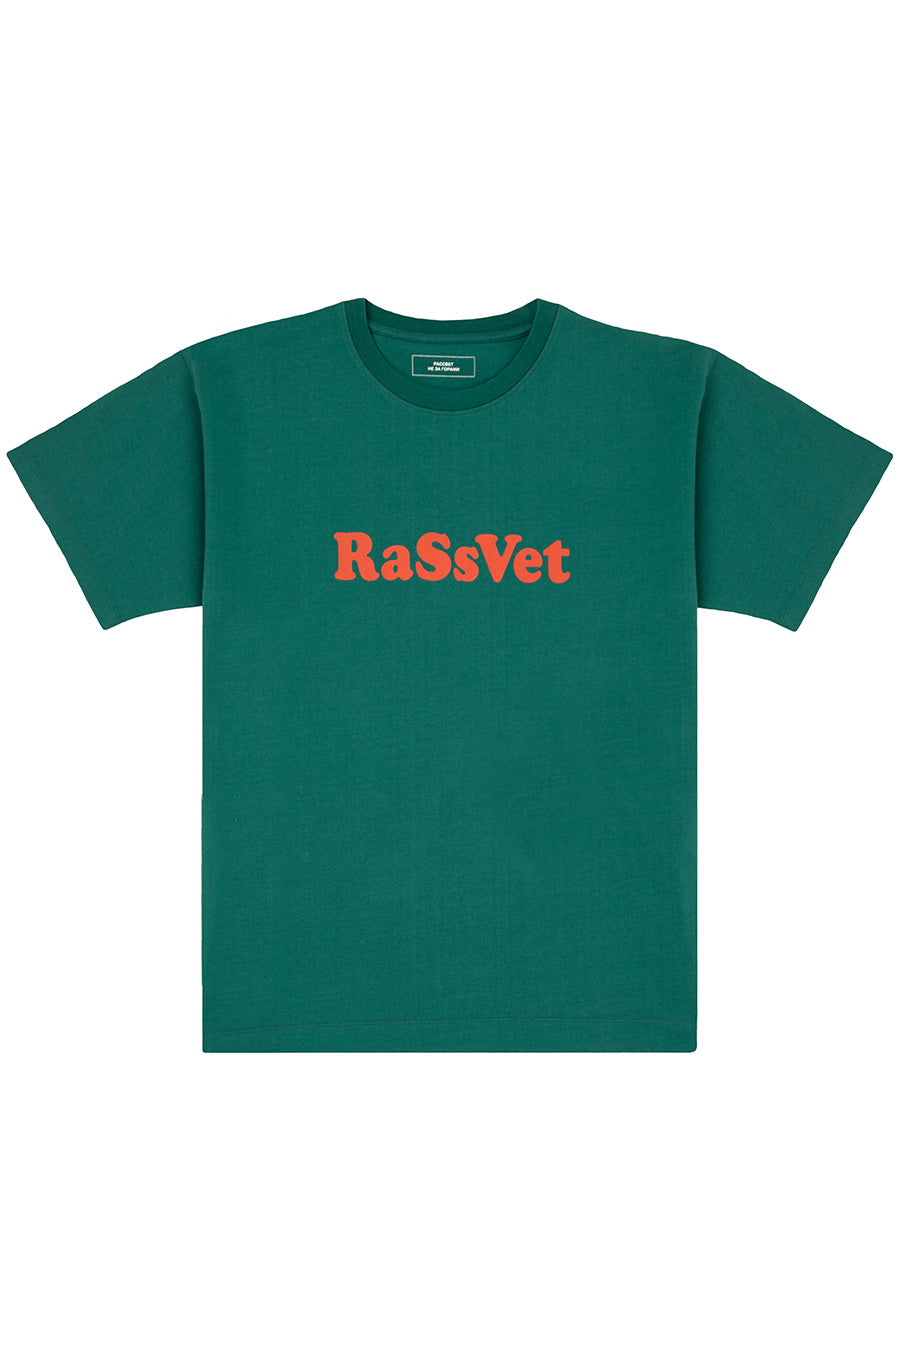 Rassvet - Dark Green Rassvet T-Shirt | 1032 SPACE